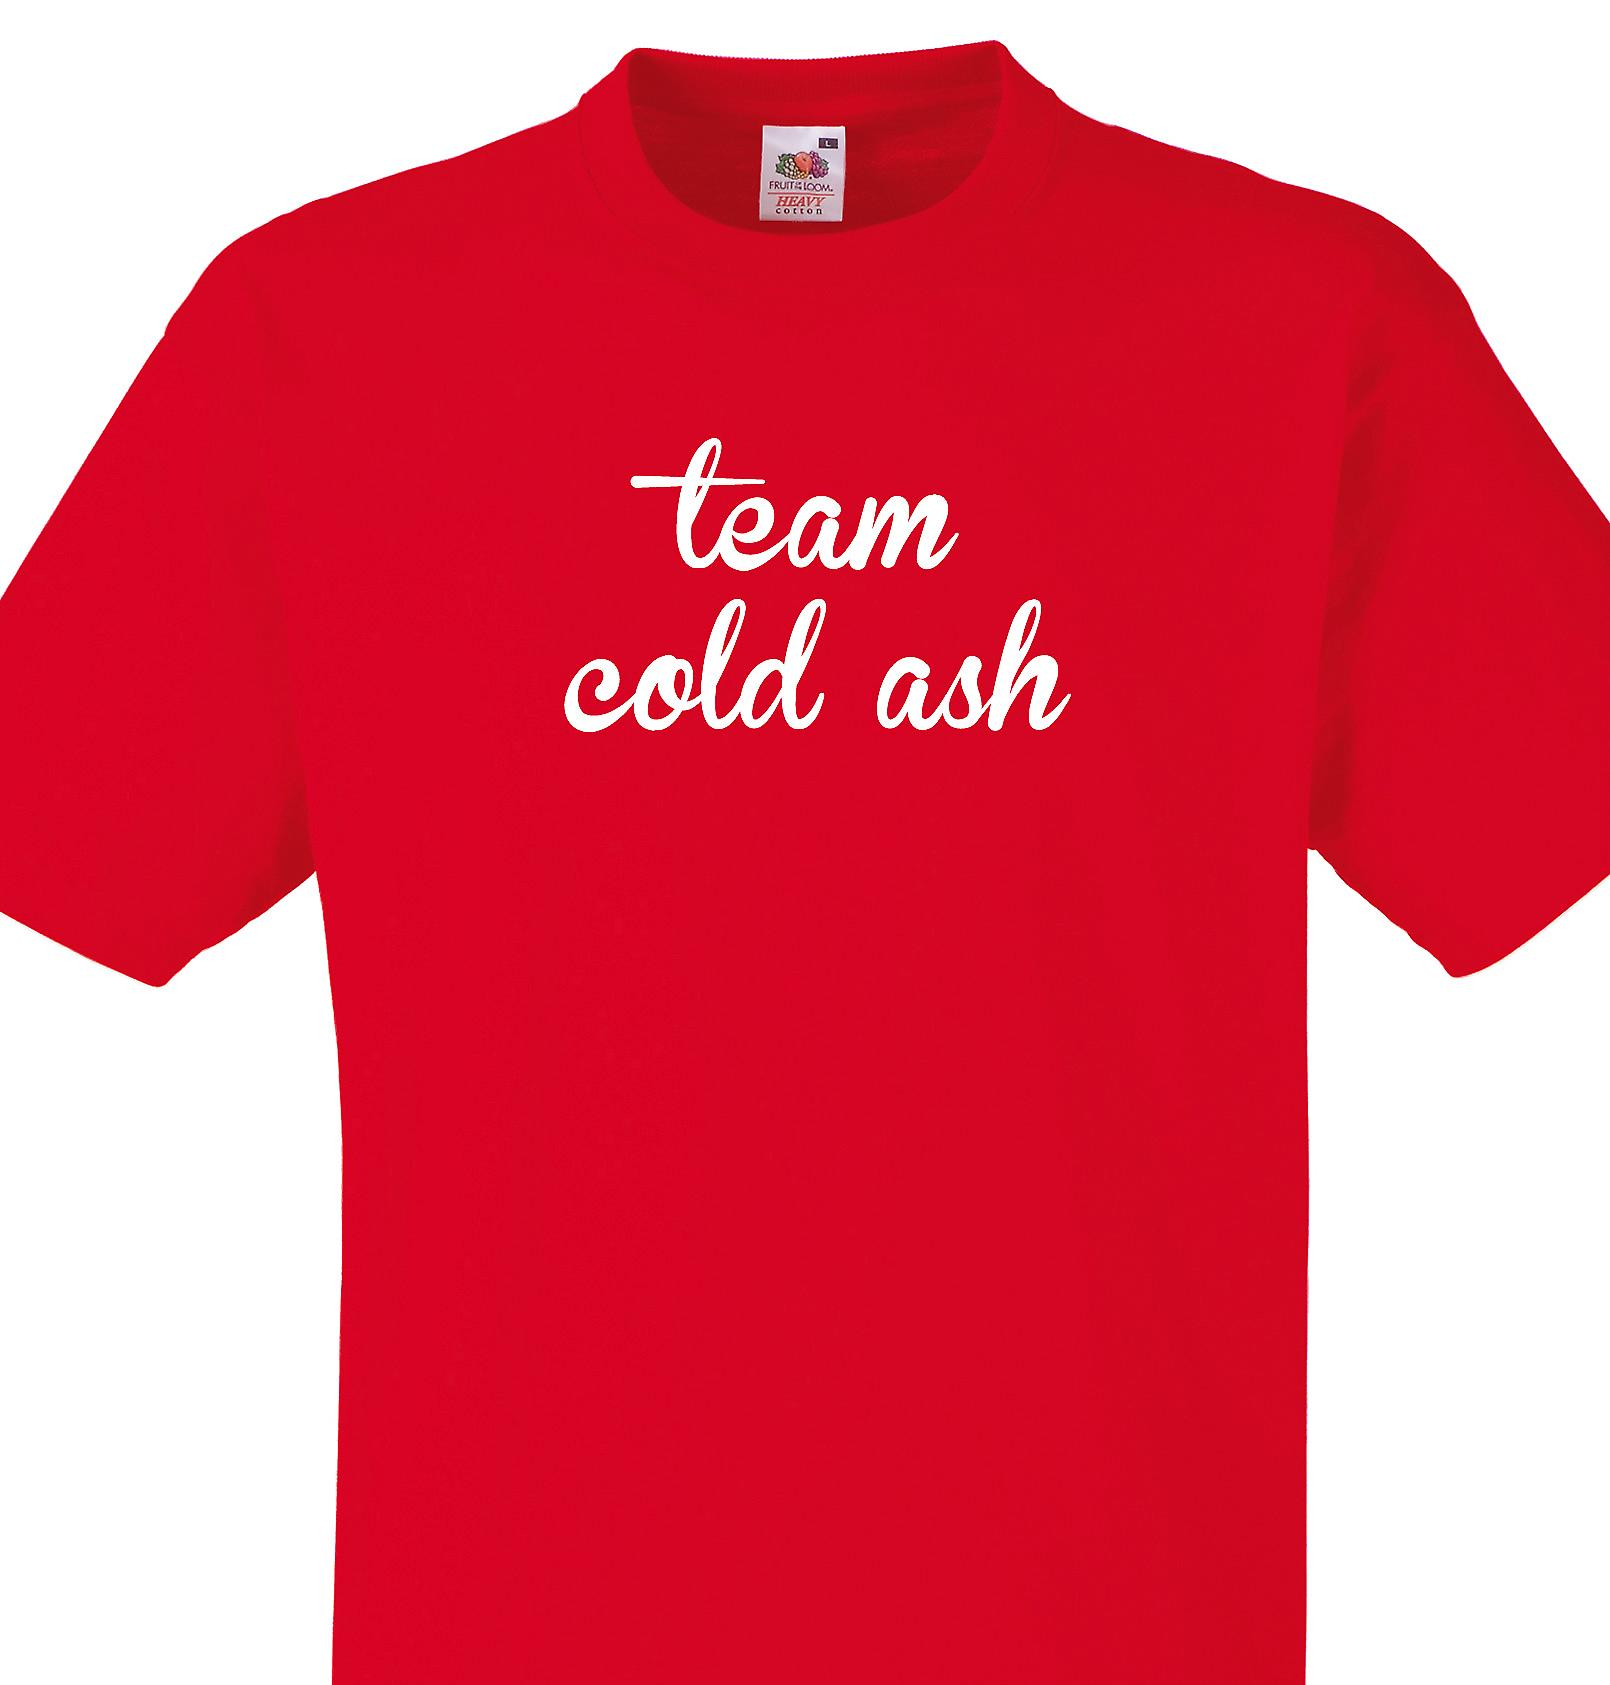 Team Cold ash Red T shirt